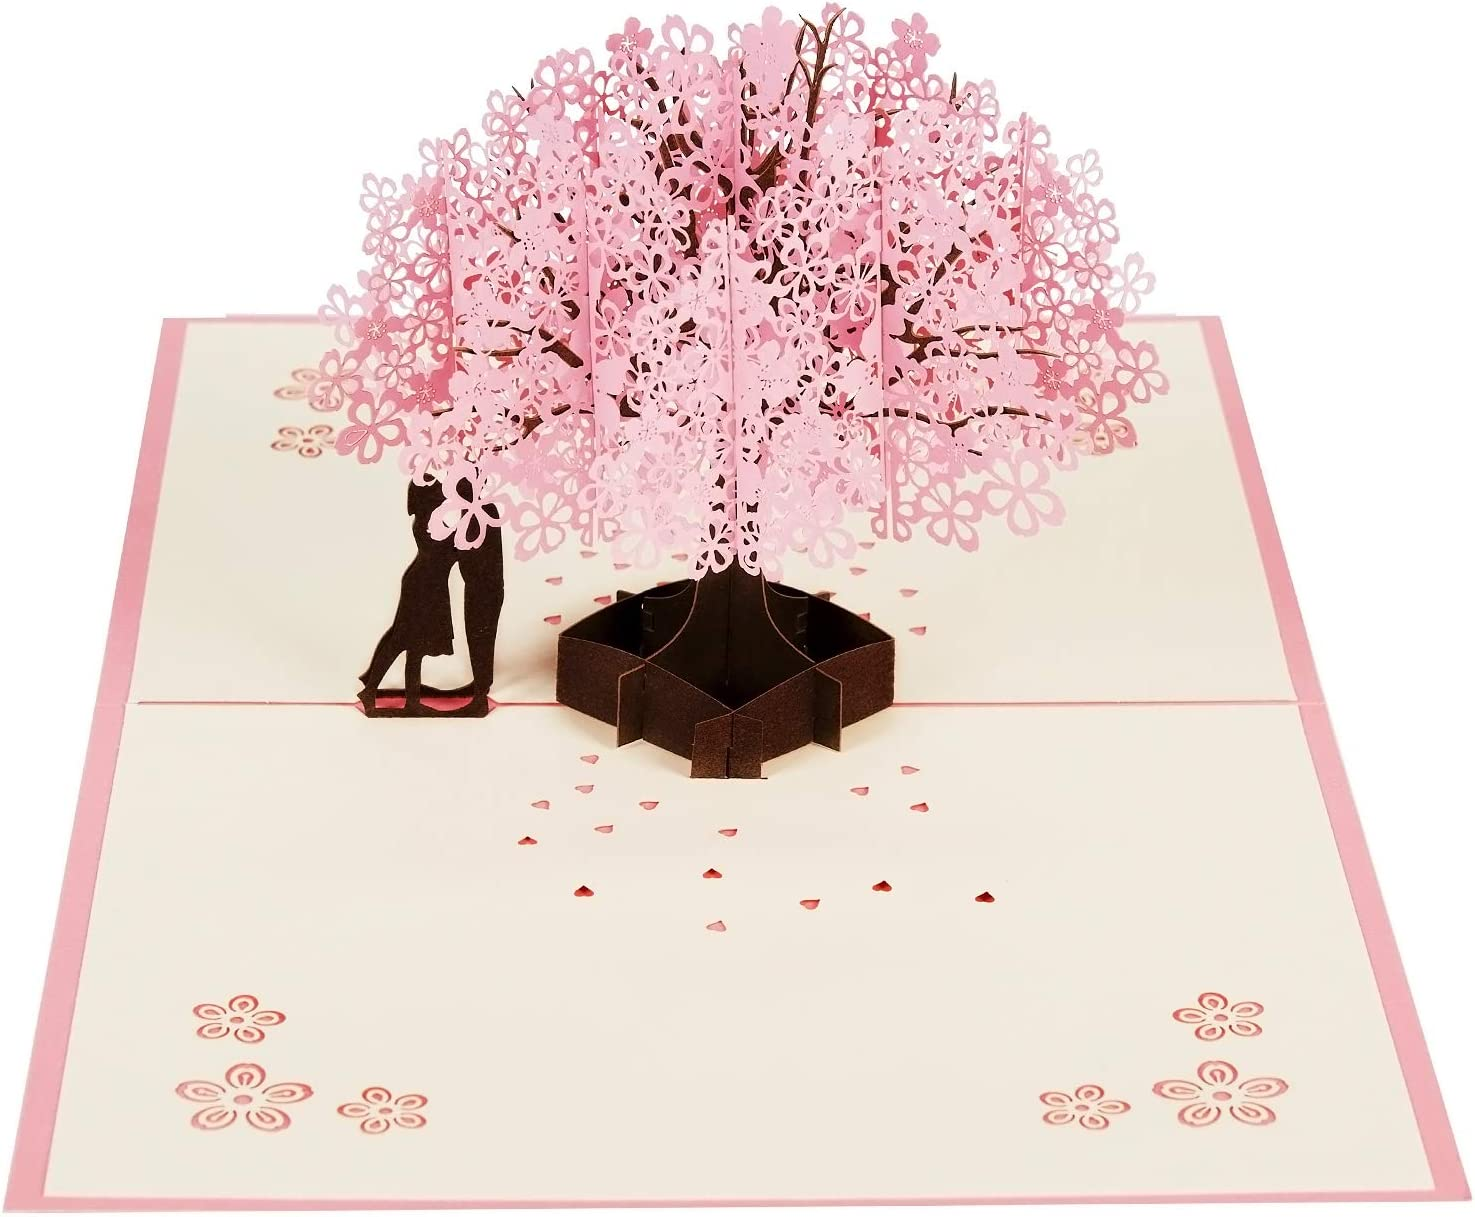 Polywen Greeting Cards | Pink Tree Couple Greeting Card | 3D Popup Card with Envelope | Ideal Birthday, Congratulations, Thank You, Wedding & Greetings Card | Stationary Blank Note for Every Occasion